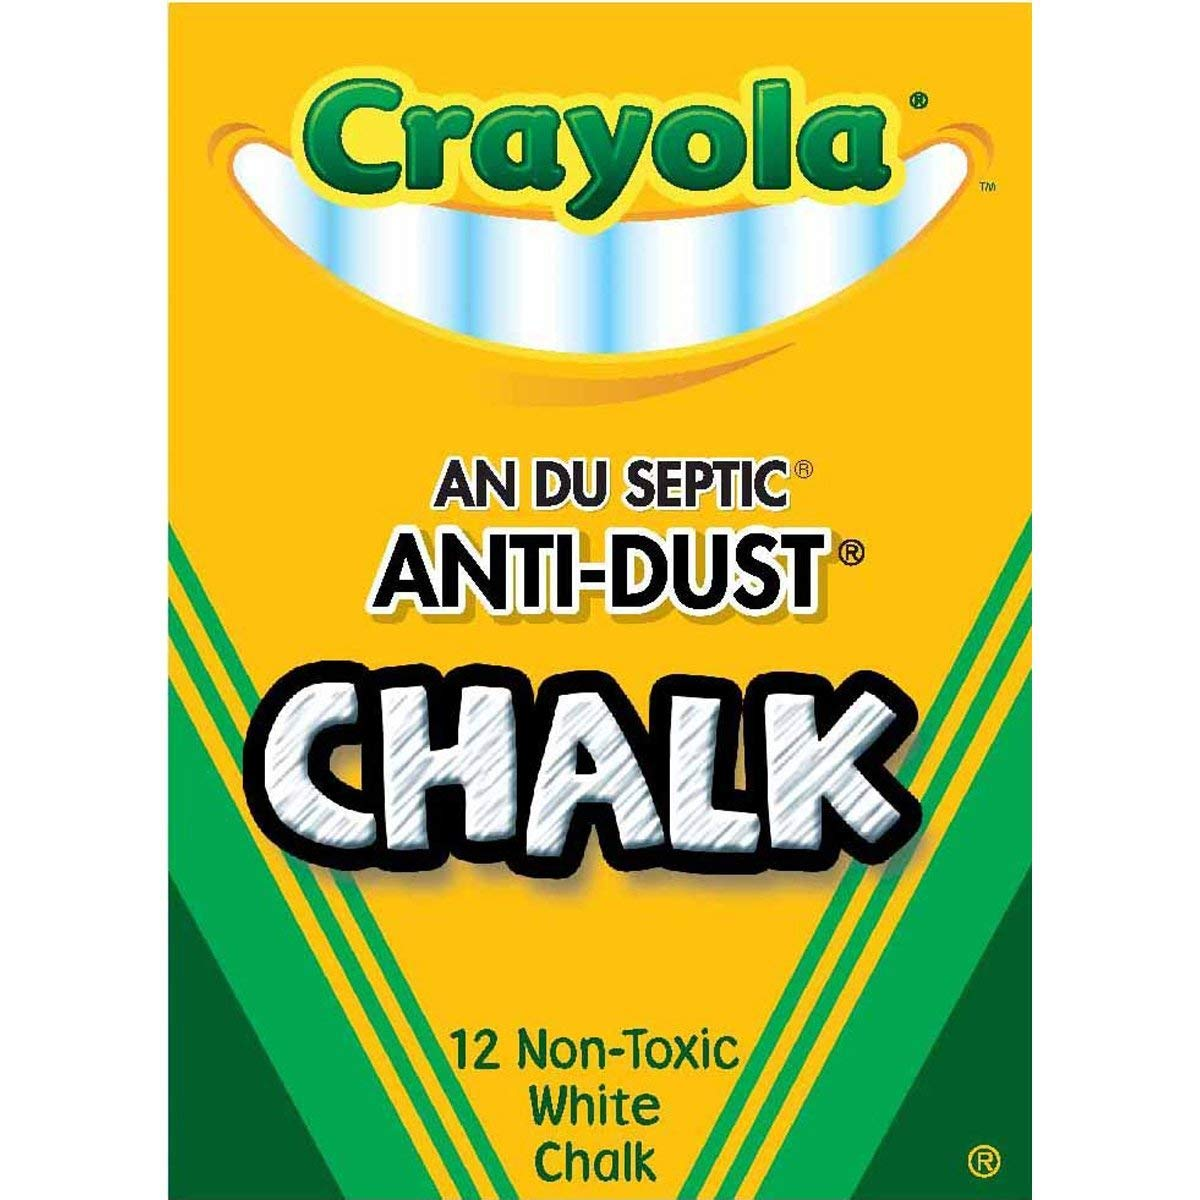 Nontoxic Anti-Dust Chalk, White, 12 Sticks/Box (50-1402), Pack of 100